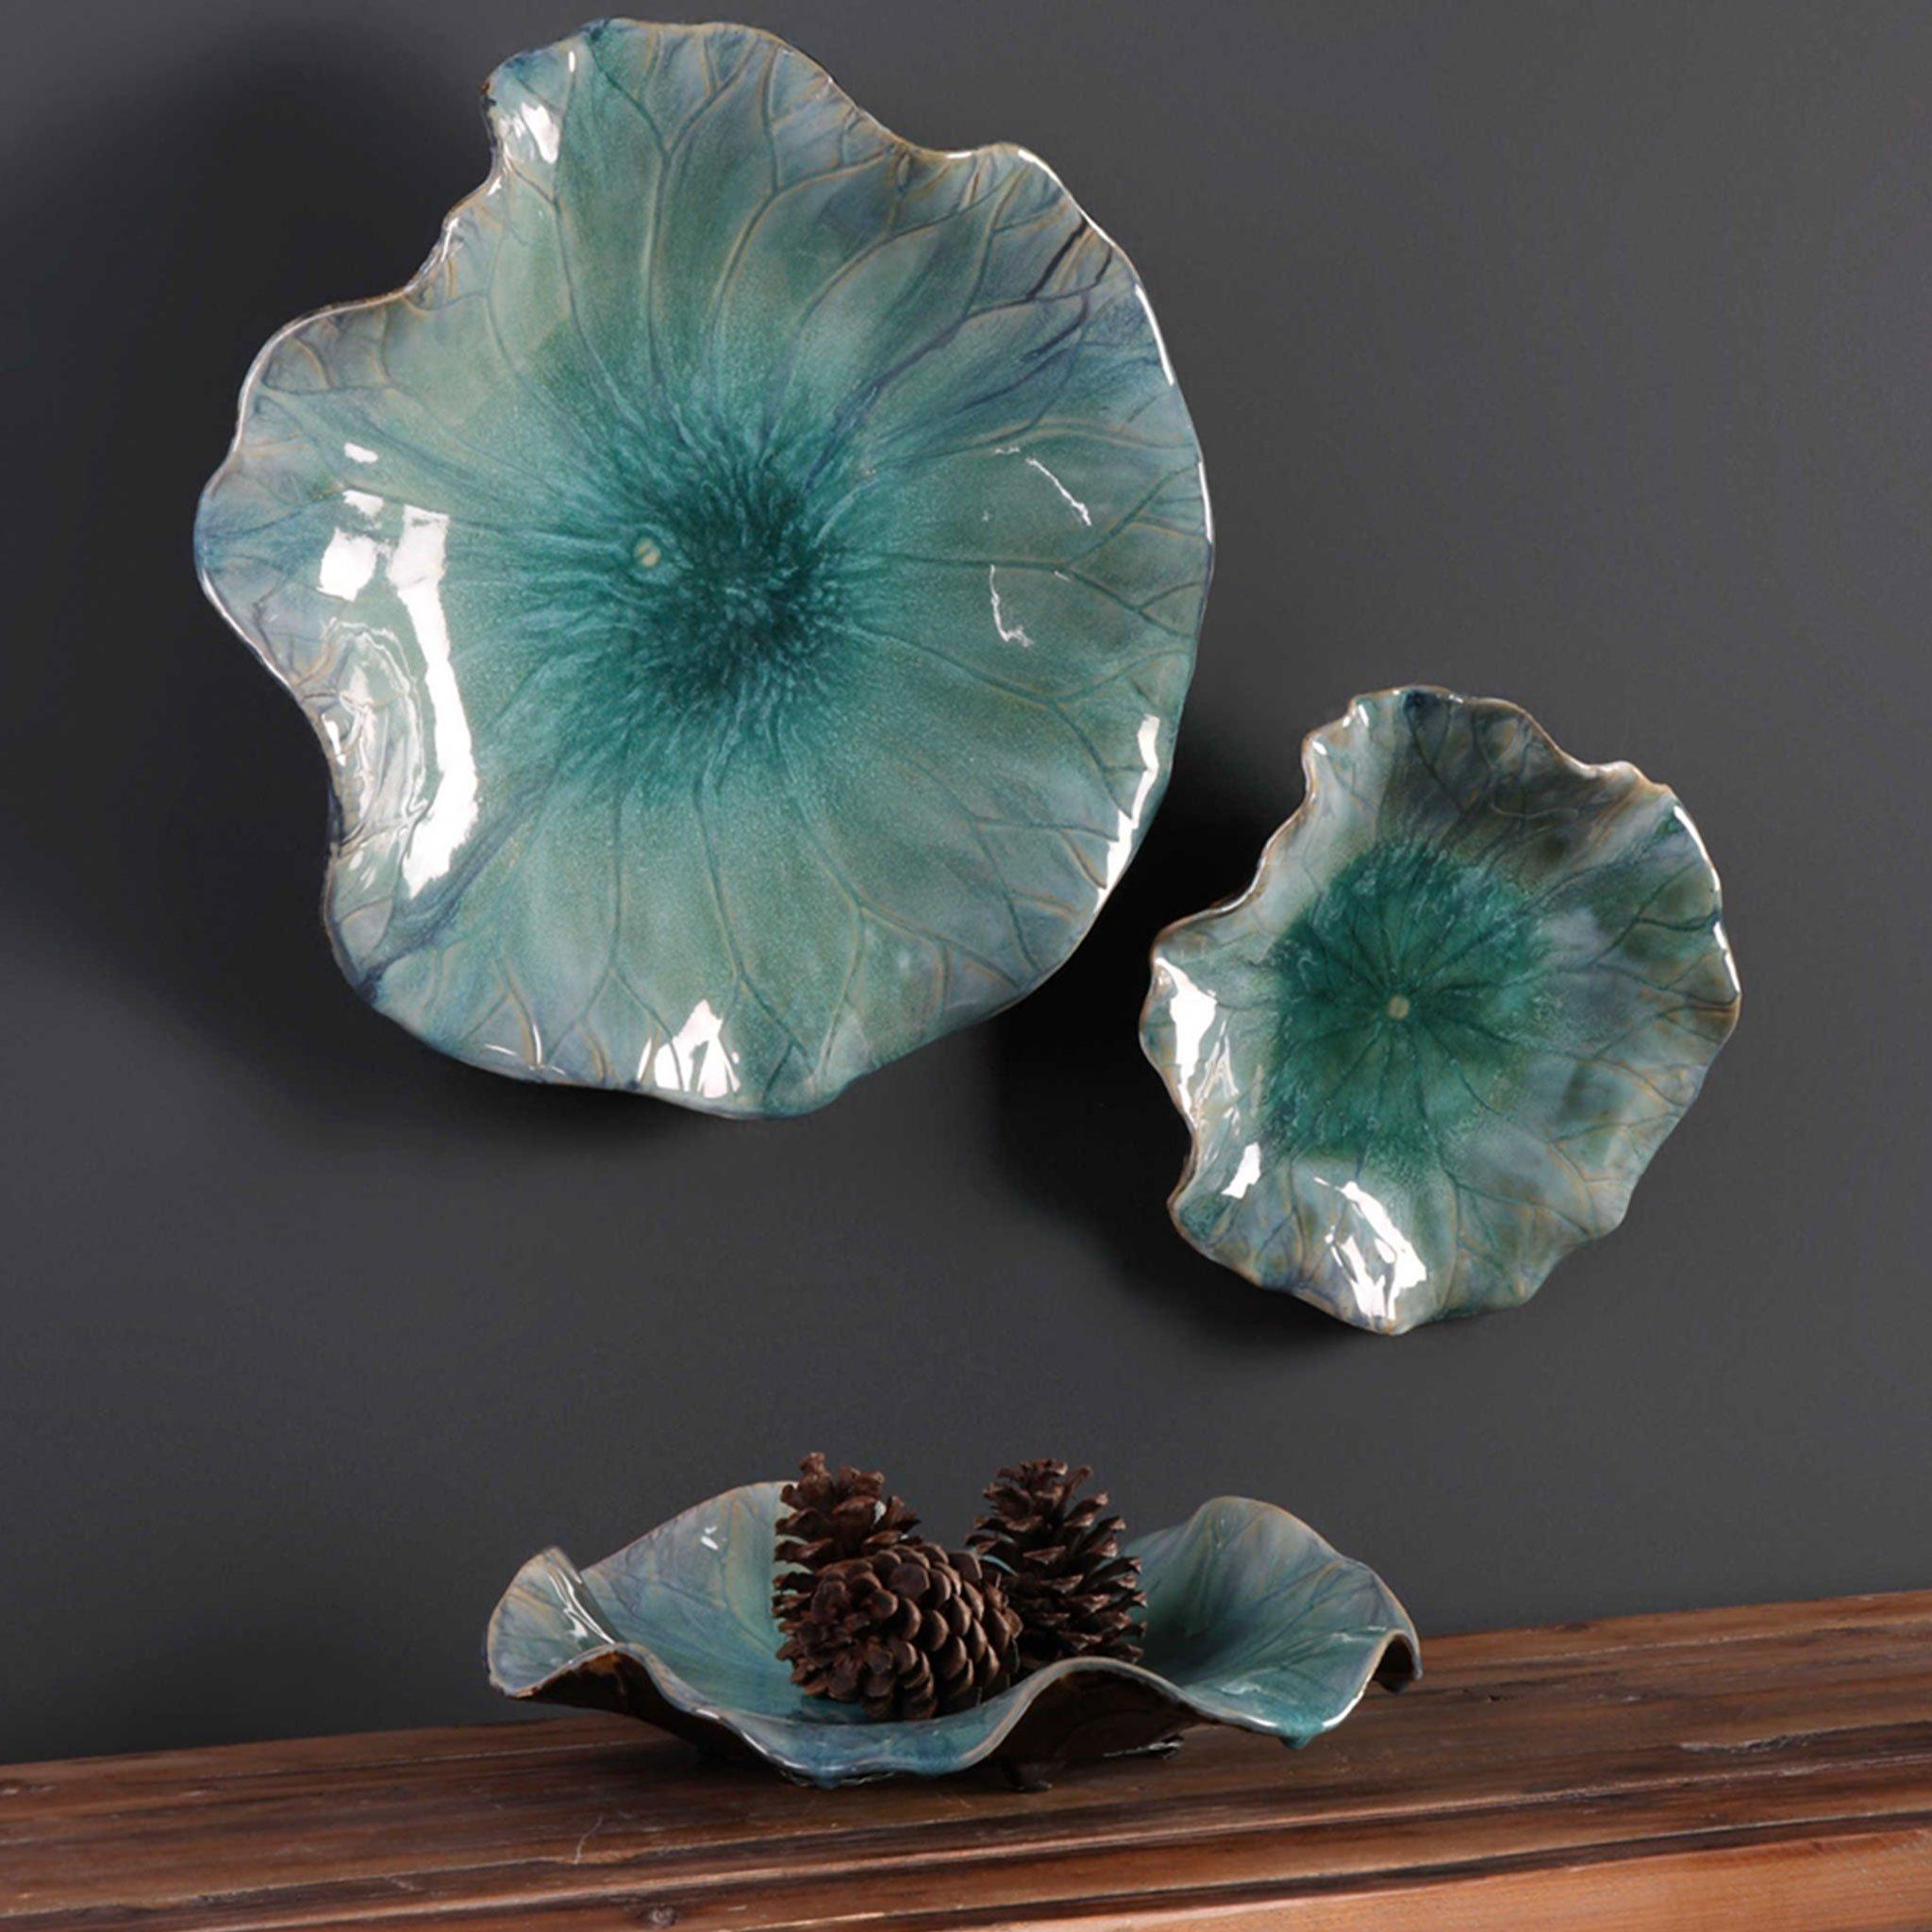 Ceramic Flower Wall Art – Ideas On Foter Within Most Current Blended Fabric Italian Wall Hangings (View 17 of 20)